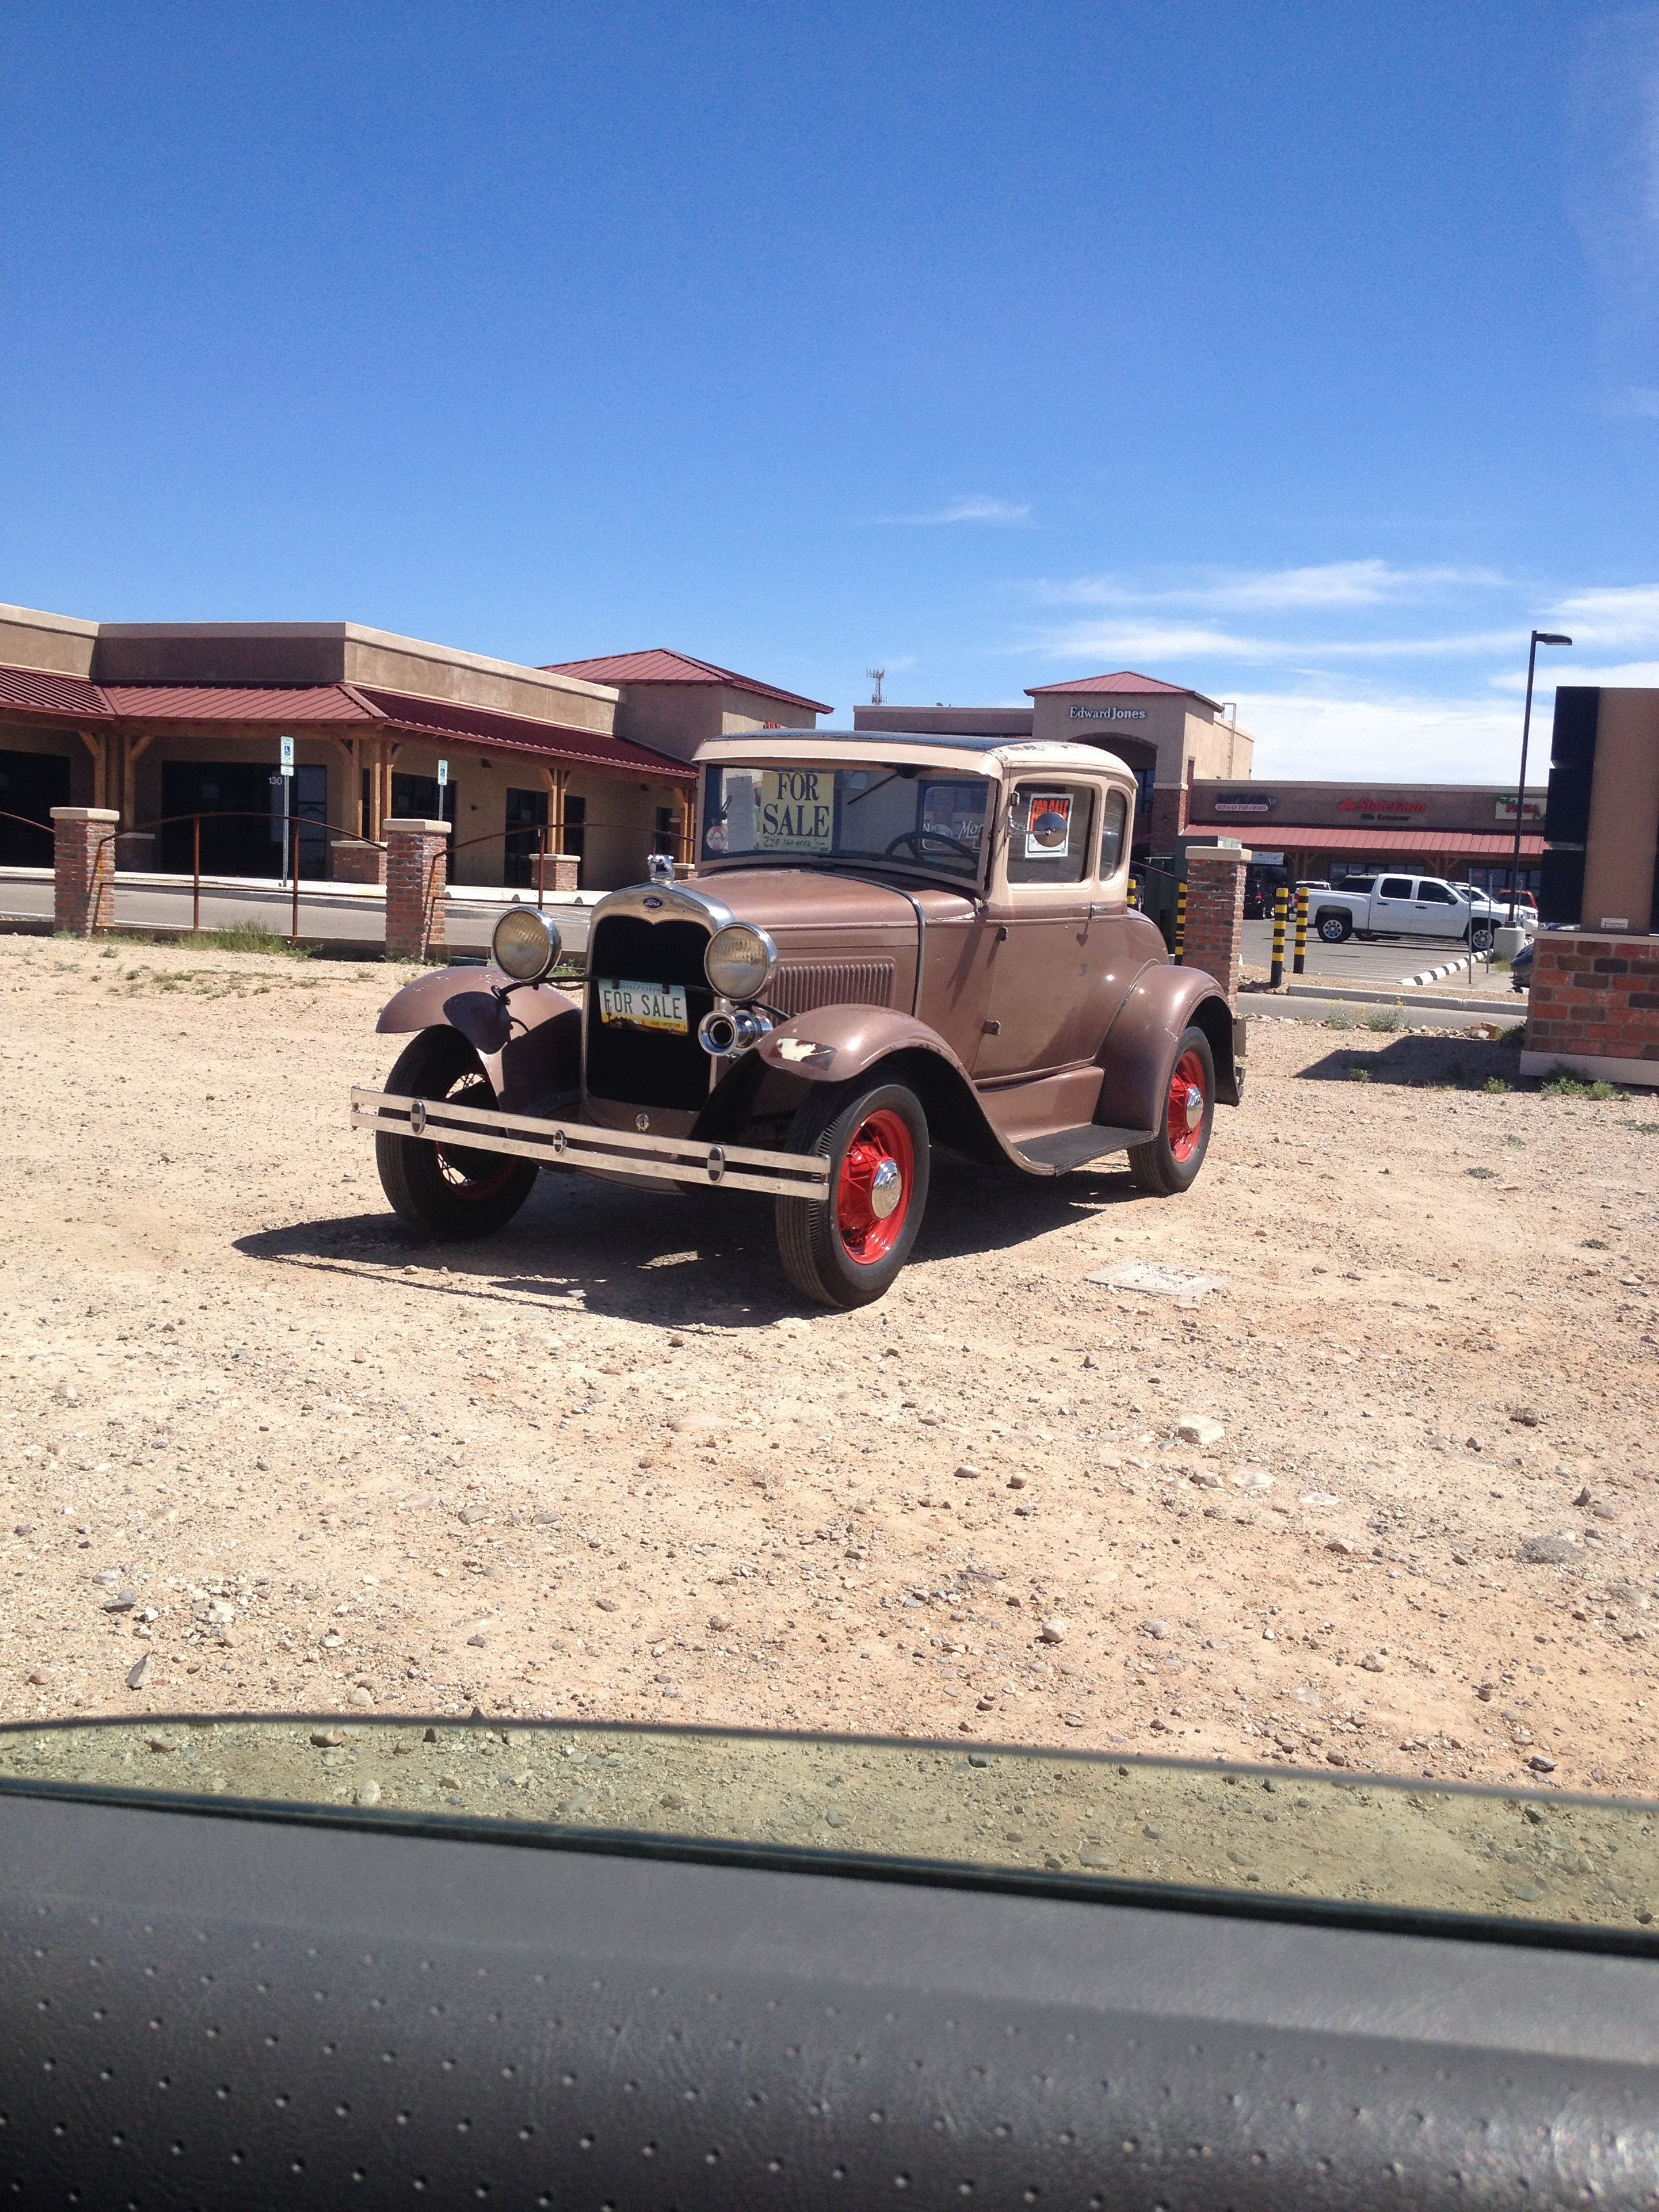 Copper colored car we saw for sale by Dairy Queen in Vail, AZ ...